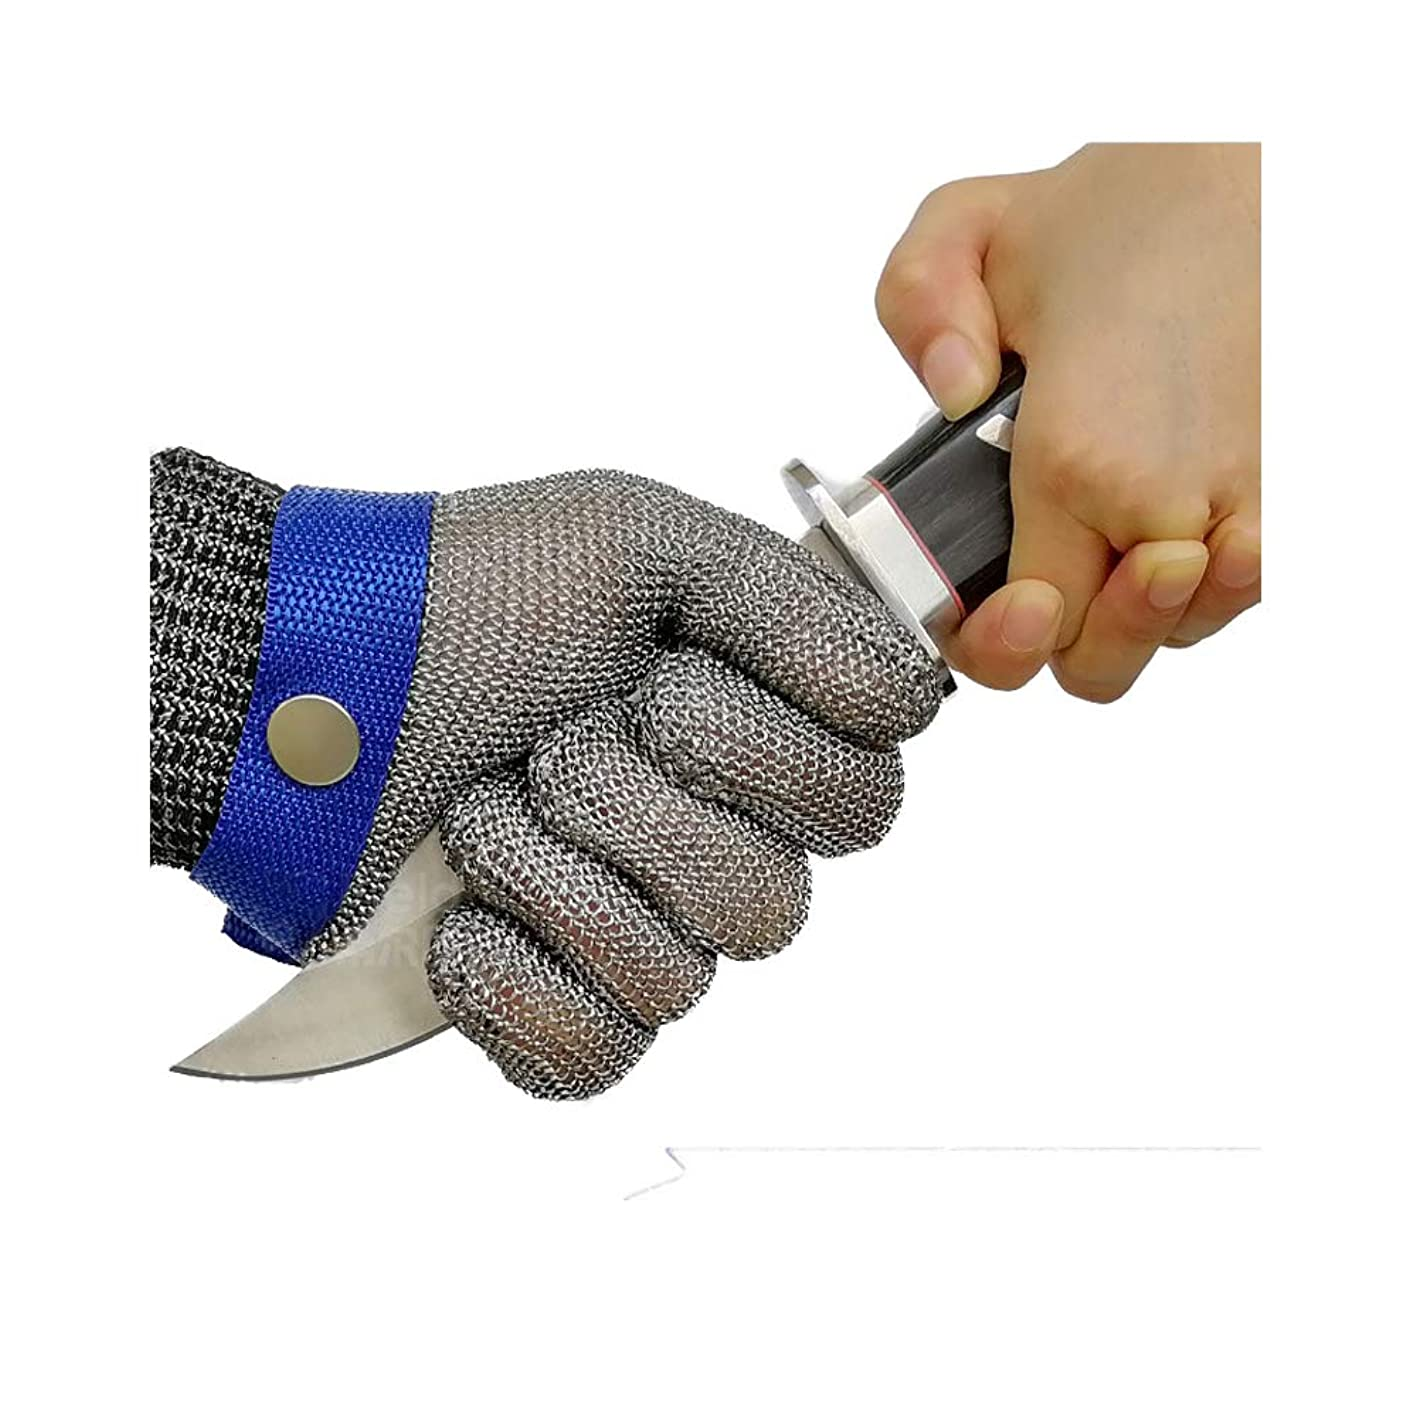 Schwer Cut Resistant Gloves-Stainless Steel Wire Metal Mesh Butcher Safety Work Glove for Meat Cutting, fishing (Large) ofqzfcrmtqk765